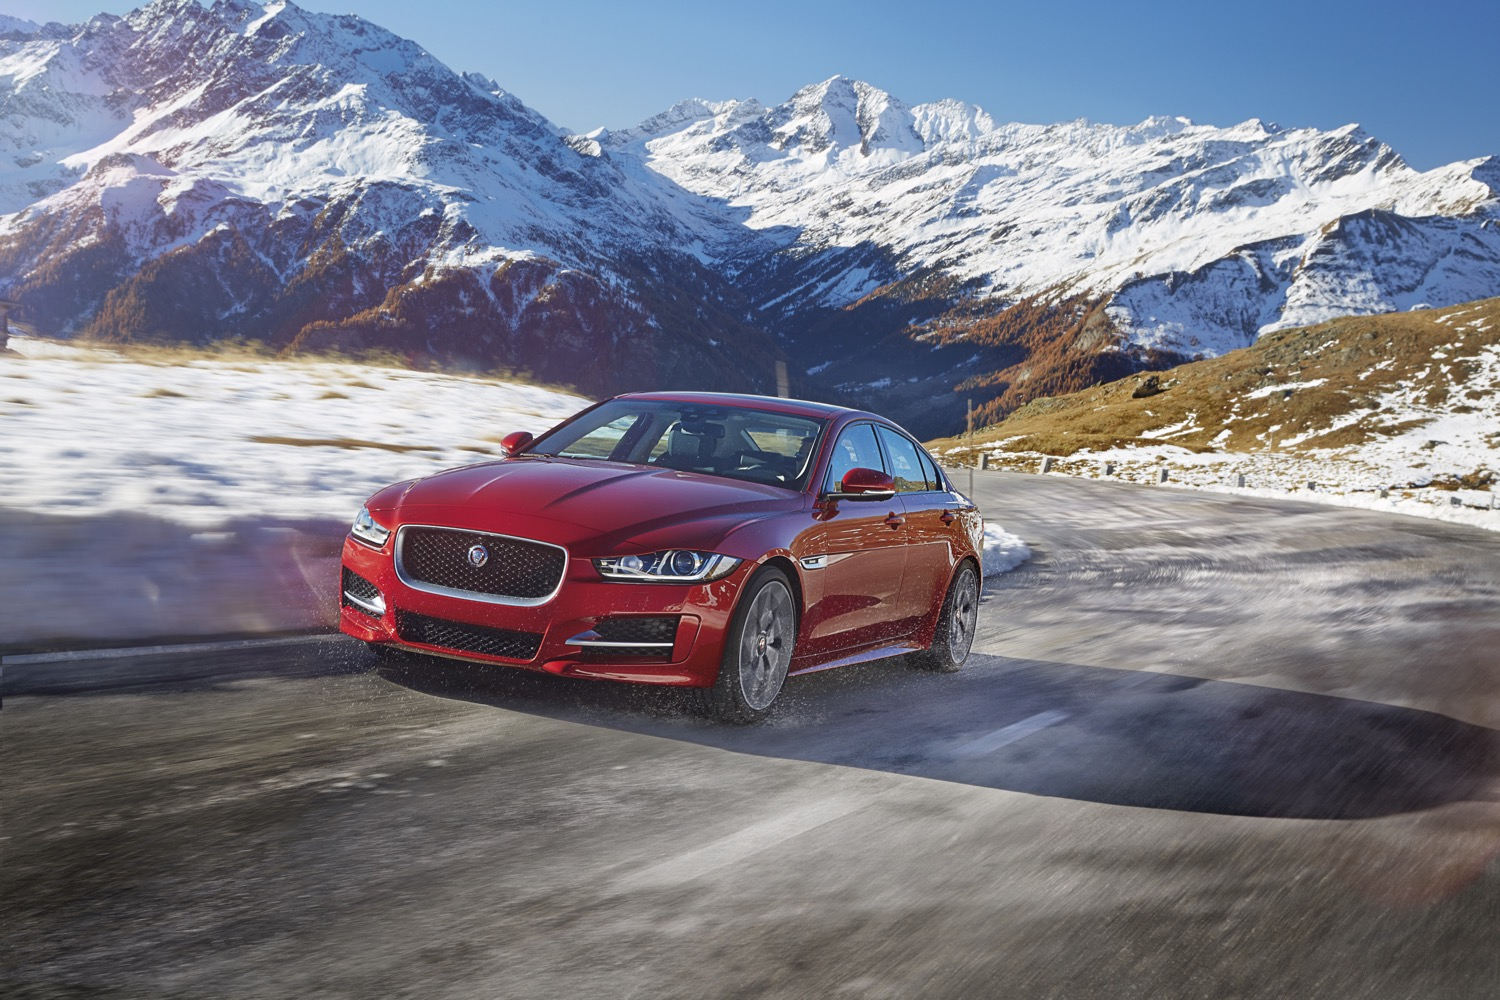 Land Rover Fort Worth >> 2017 Jaguar XE Review, Ratings, Specs, Prices, and Photos ...